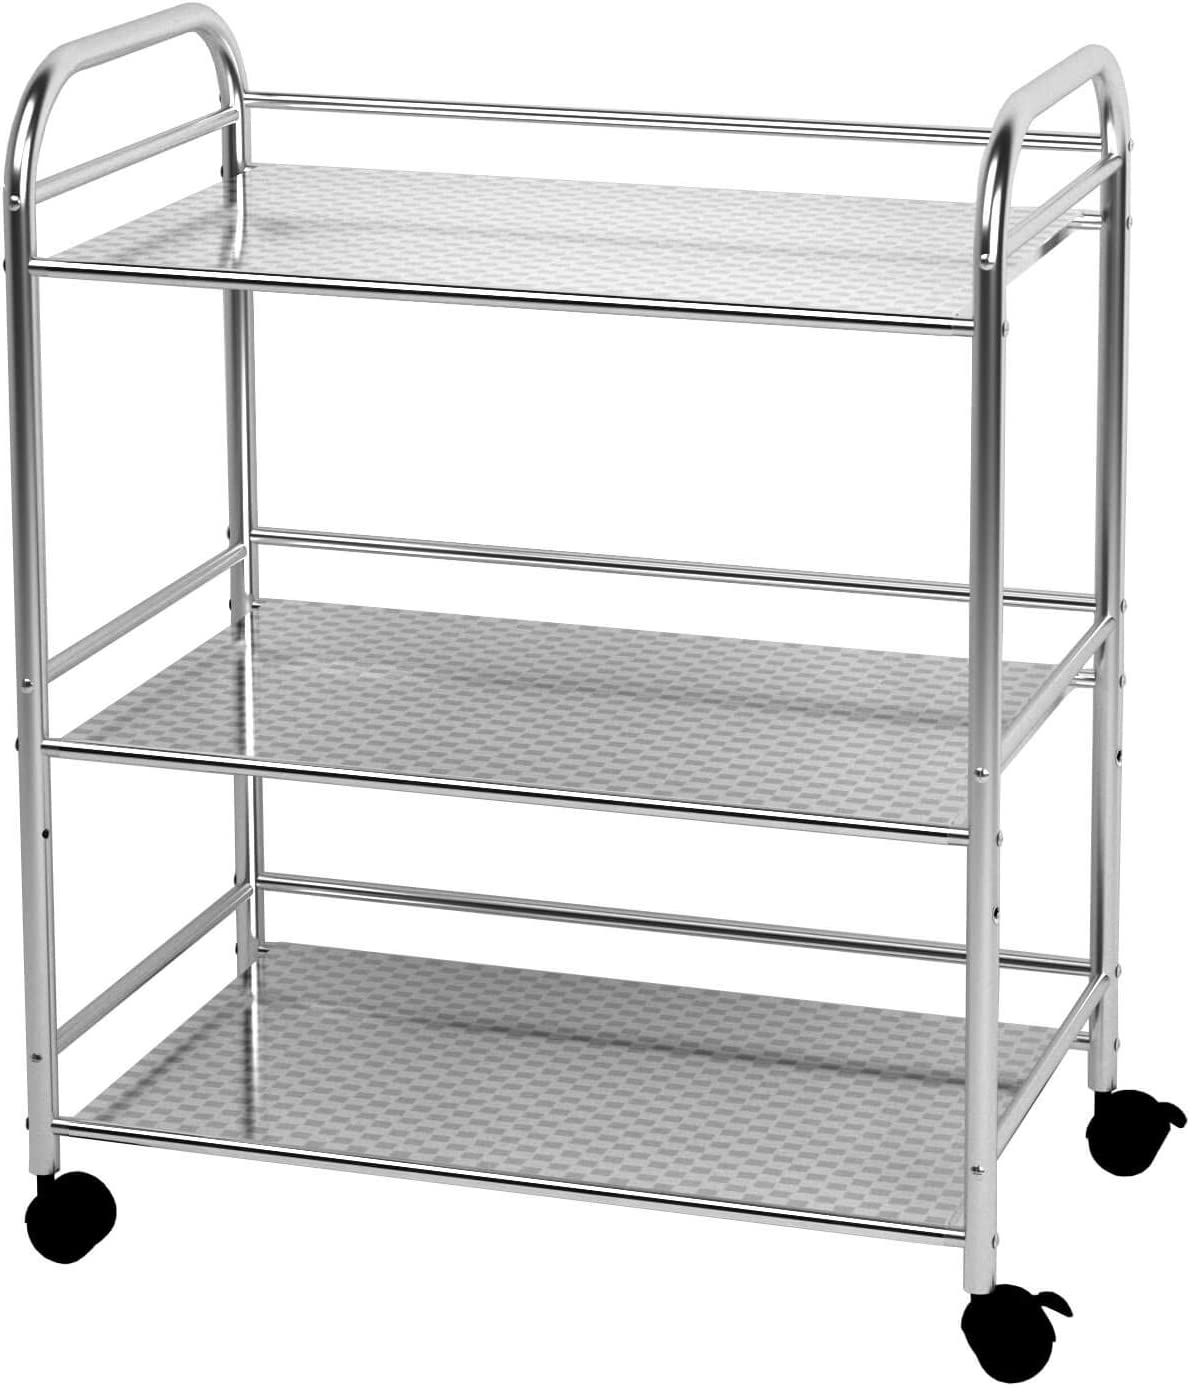 YKEASE 3-Shelf Shelving Units on Stainless Kitchen Steel Max 83% OFF Wheels Max 81% OFF